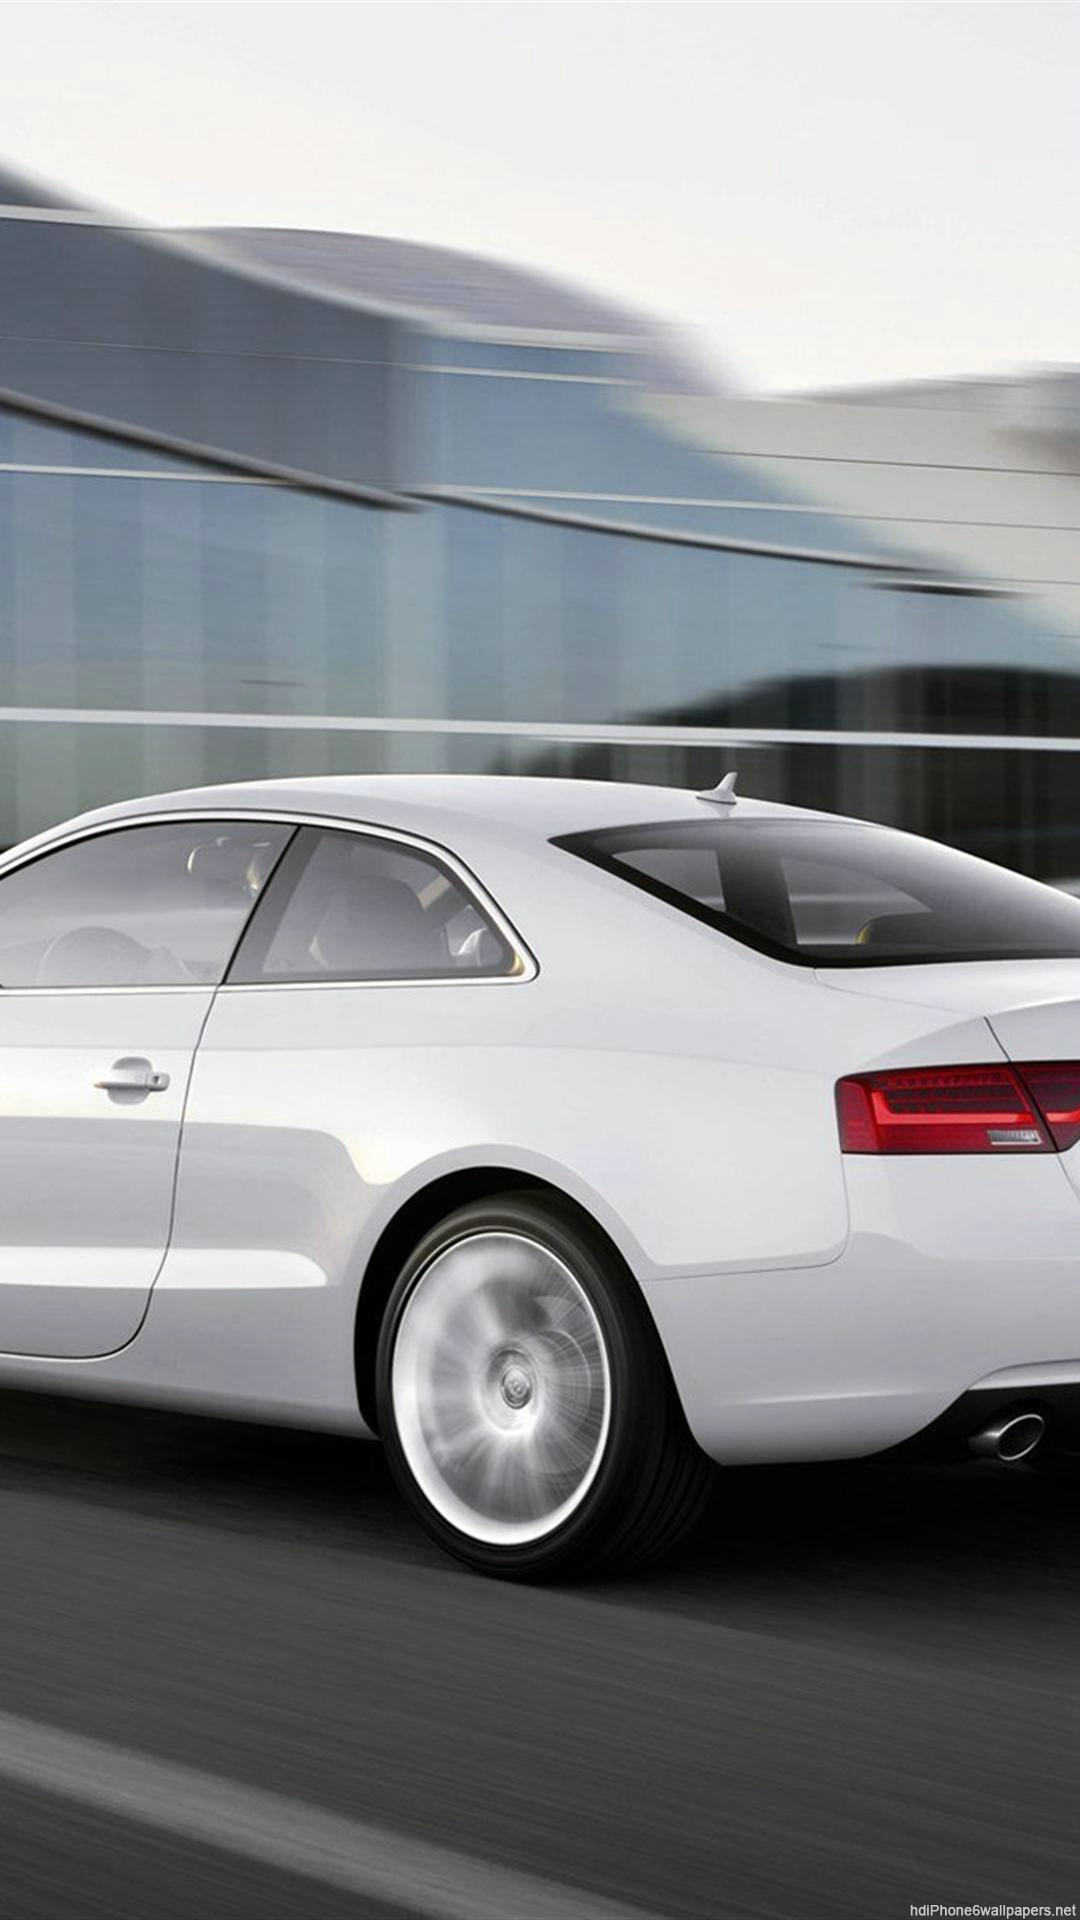 Audi Car Iphonewallpapers Hd And 1080pplus Wallpapers - Audi A5 B8 5 Coupe , HD Wallpaper & Backgrounds